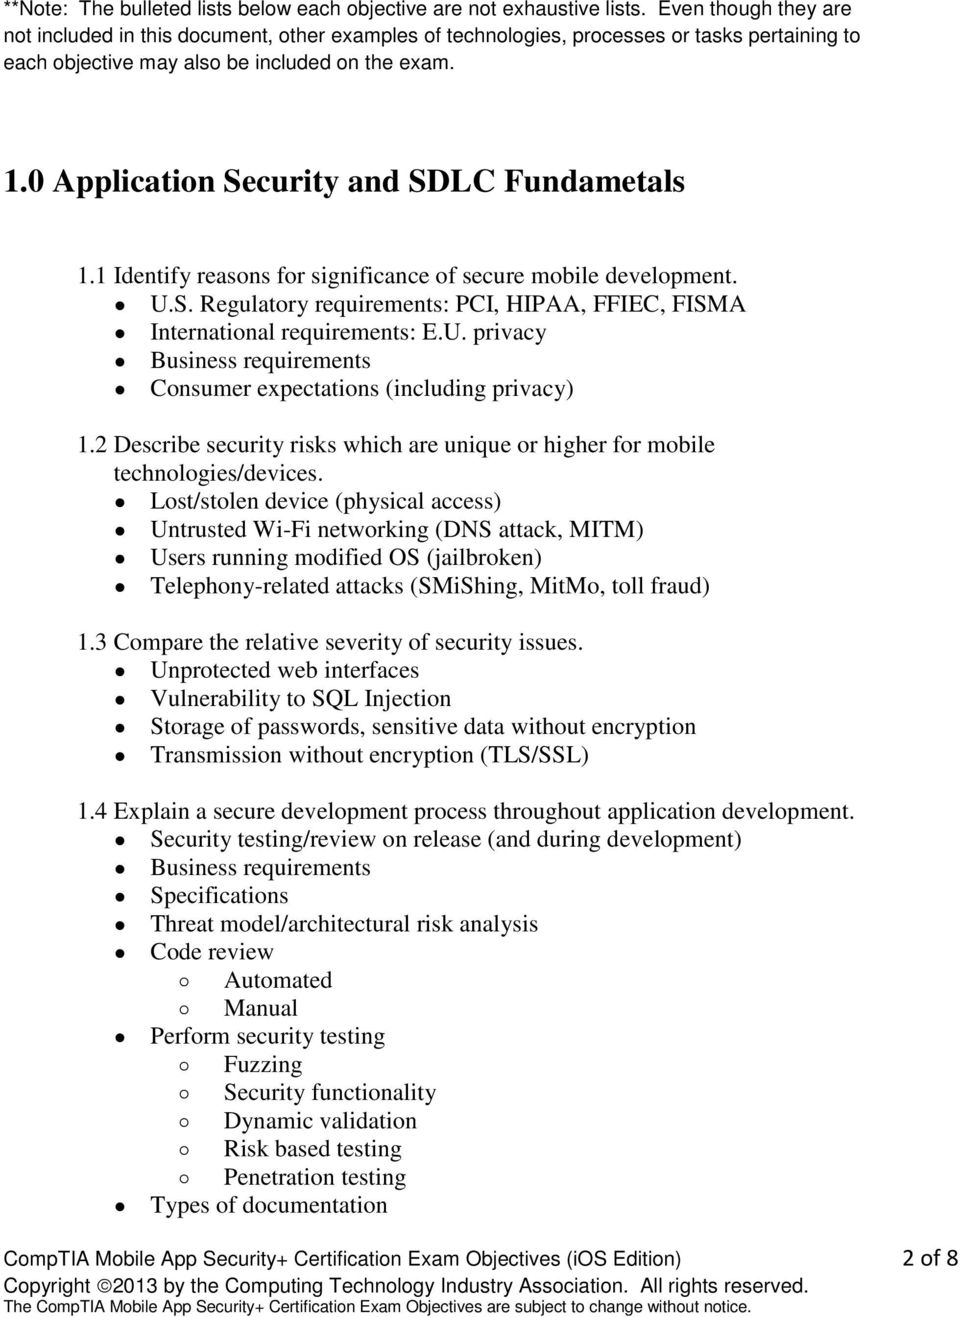 0 Application Security and SDLC Fundametals 1.1 Identify reasons for significance of secure mobile development. U.S. Regulatory requirements: PCI, HIPAA, FFIEC, FISMA International requirements: E.U. privacy Business requirements Consumer expectations (including privacy) 1.